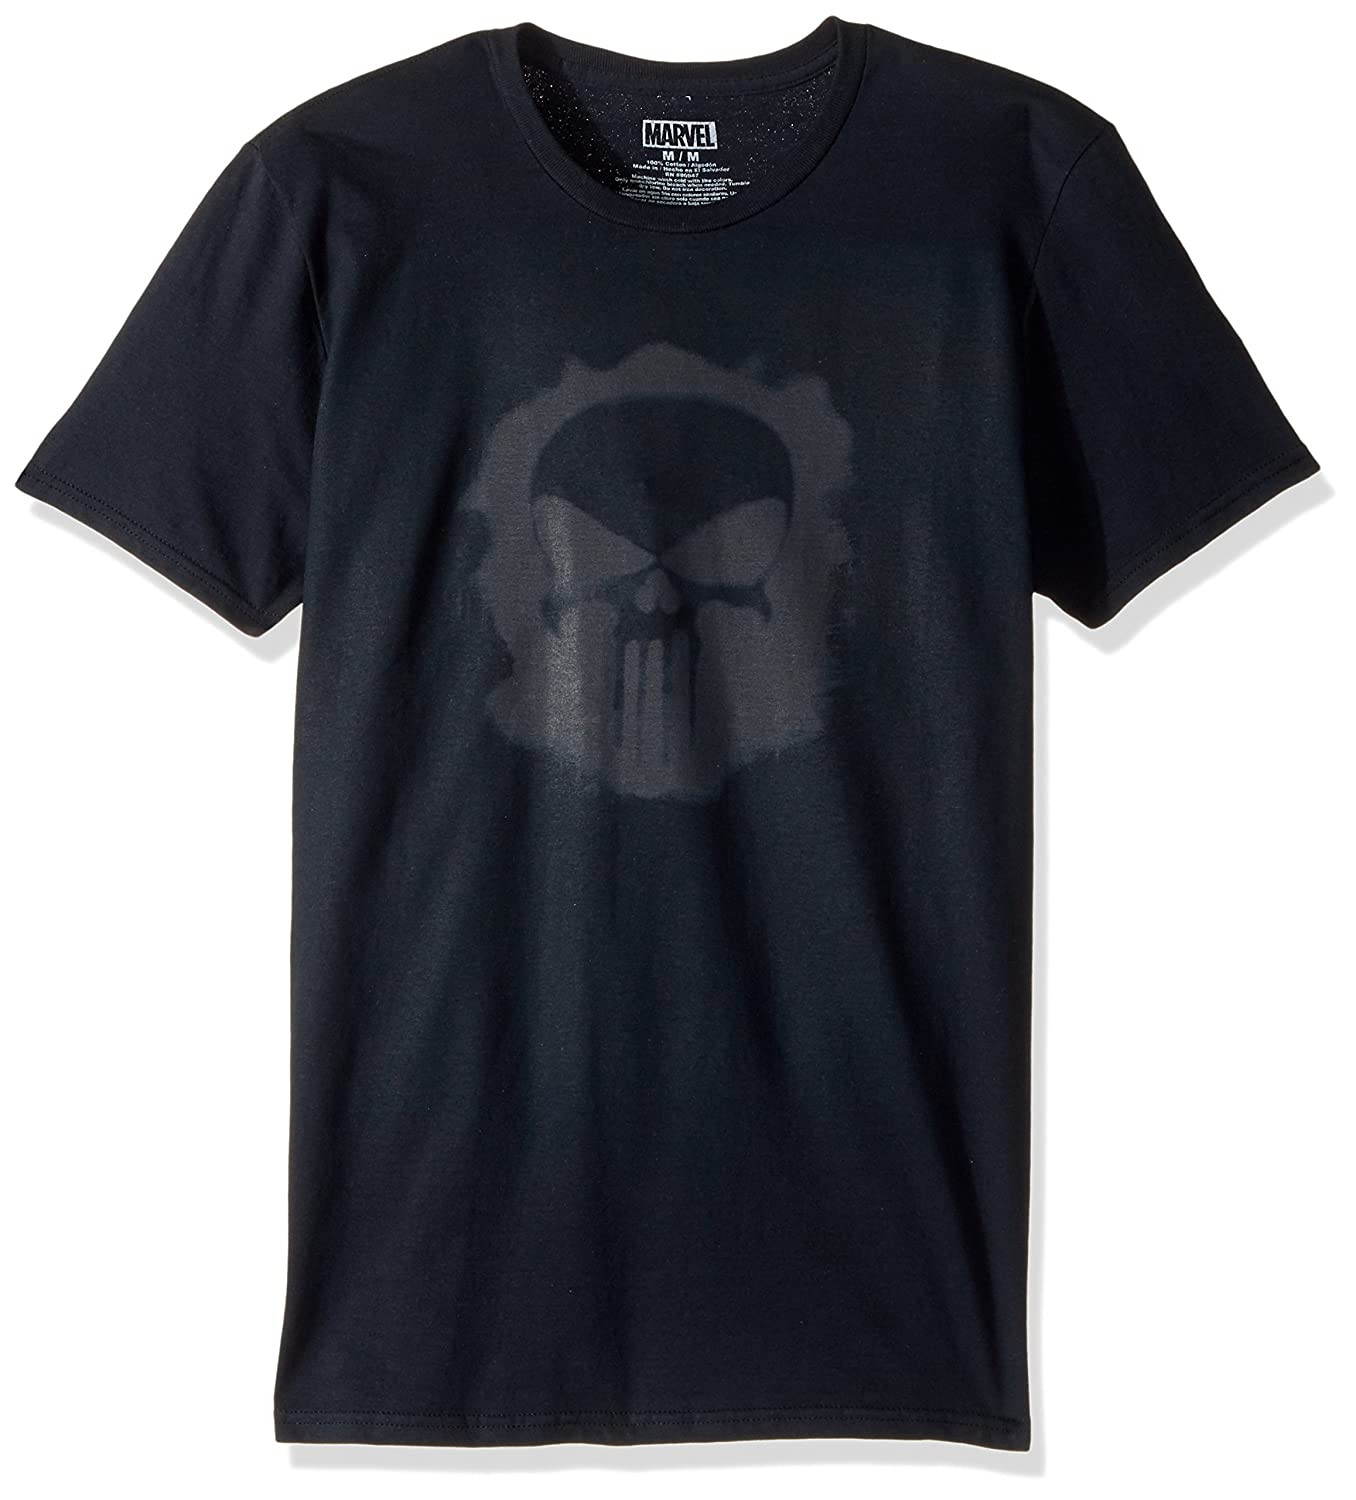 Marvel Mens Punisher Logo with Smaller Logos Short Sleeve Graphic T-Shirt 4UN81580AZ